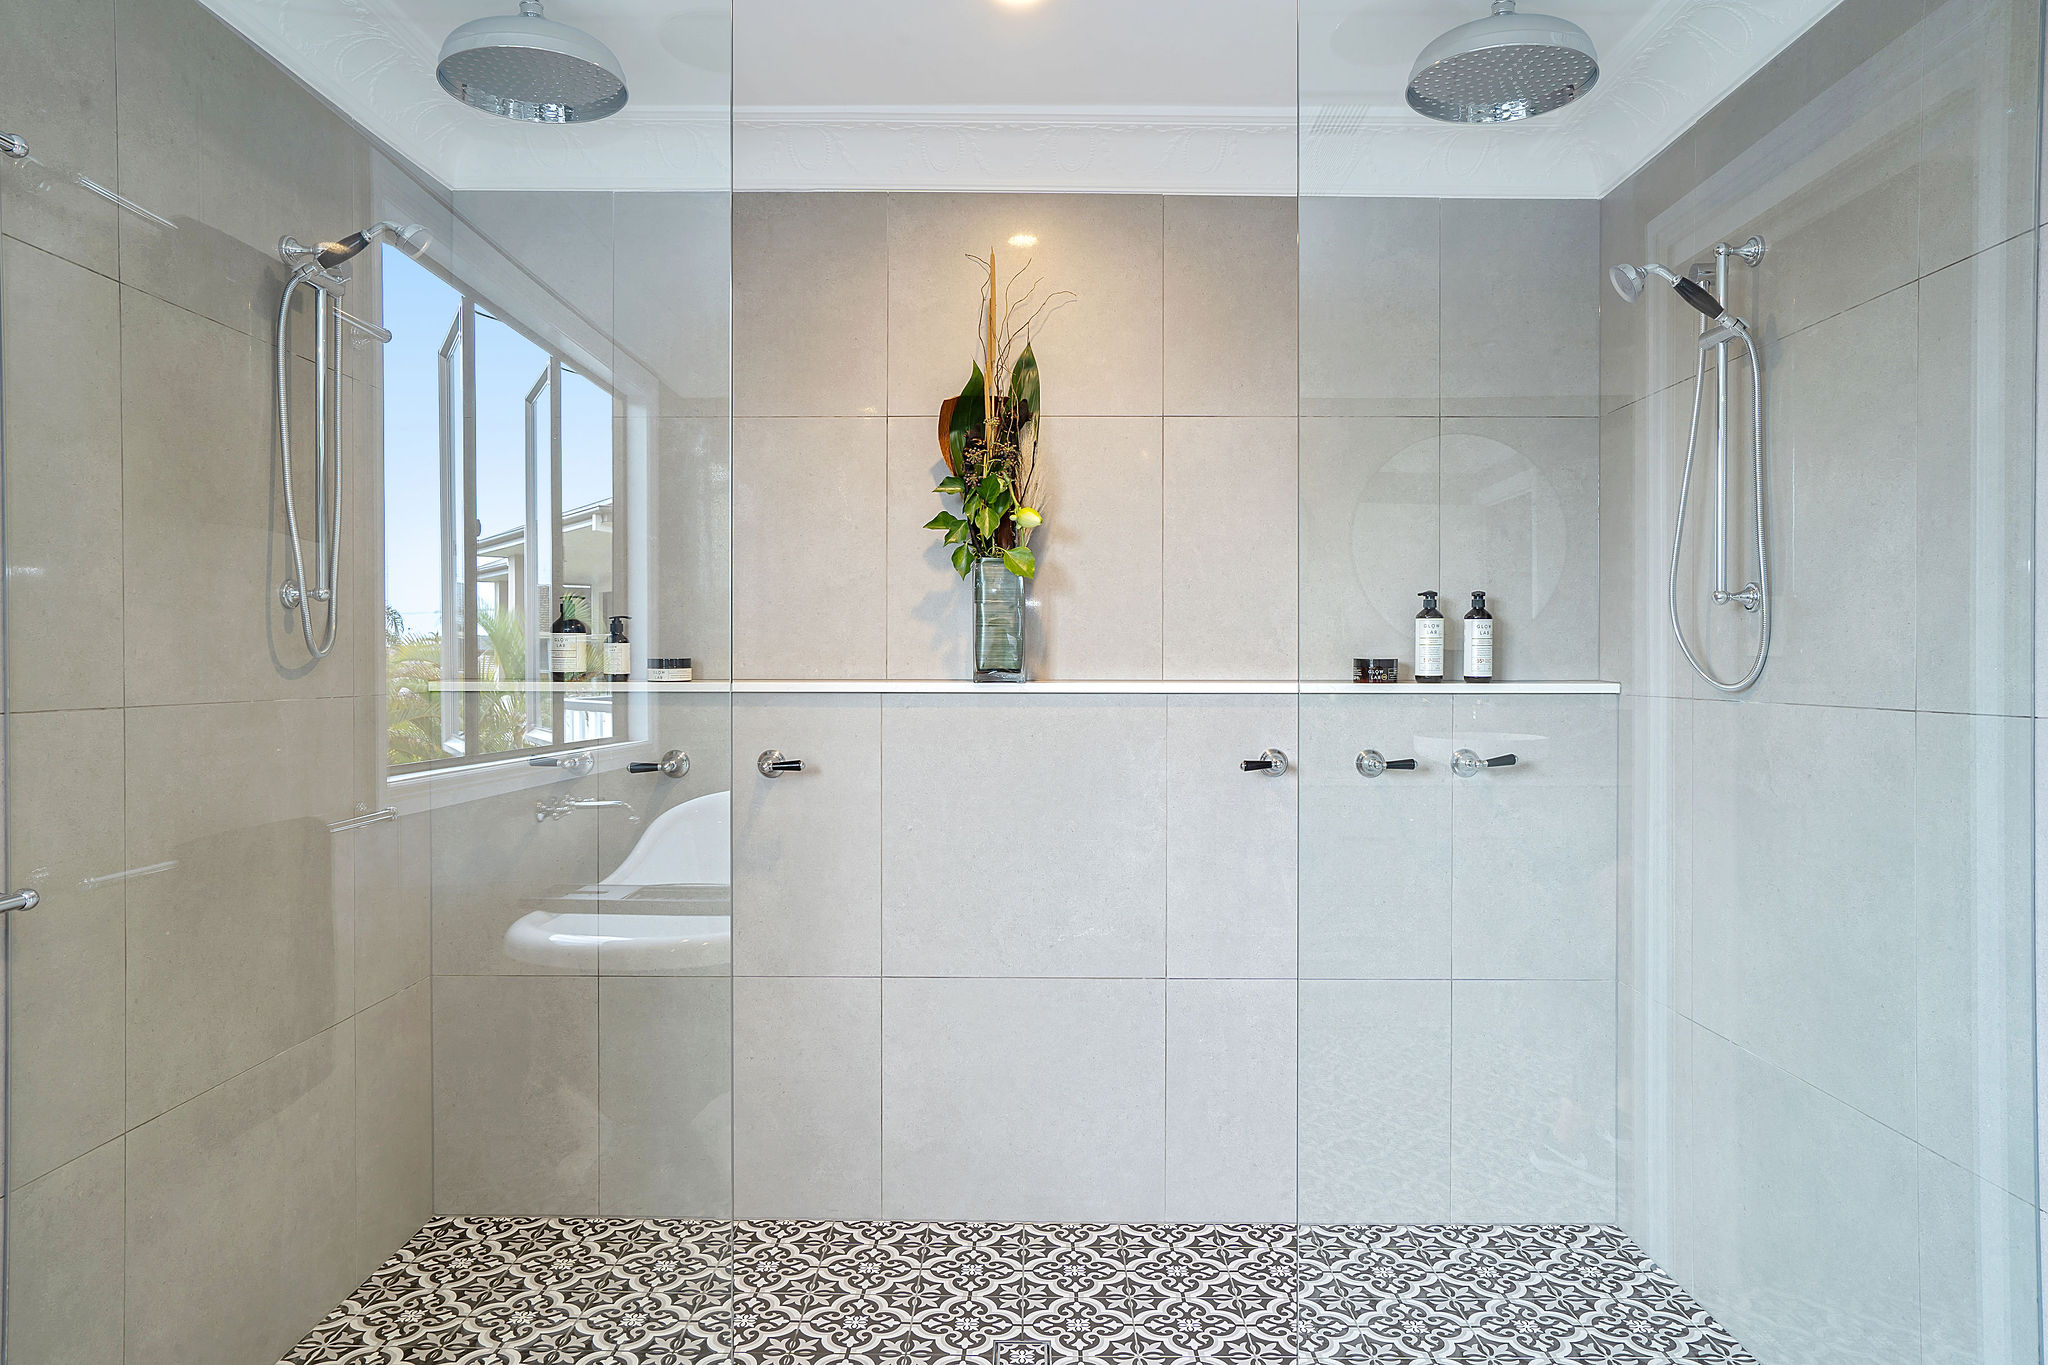 Are double showers worth it?